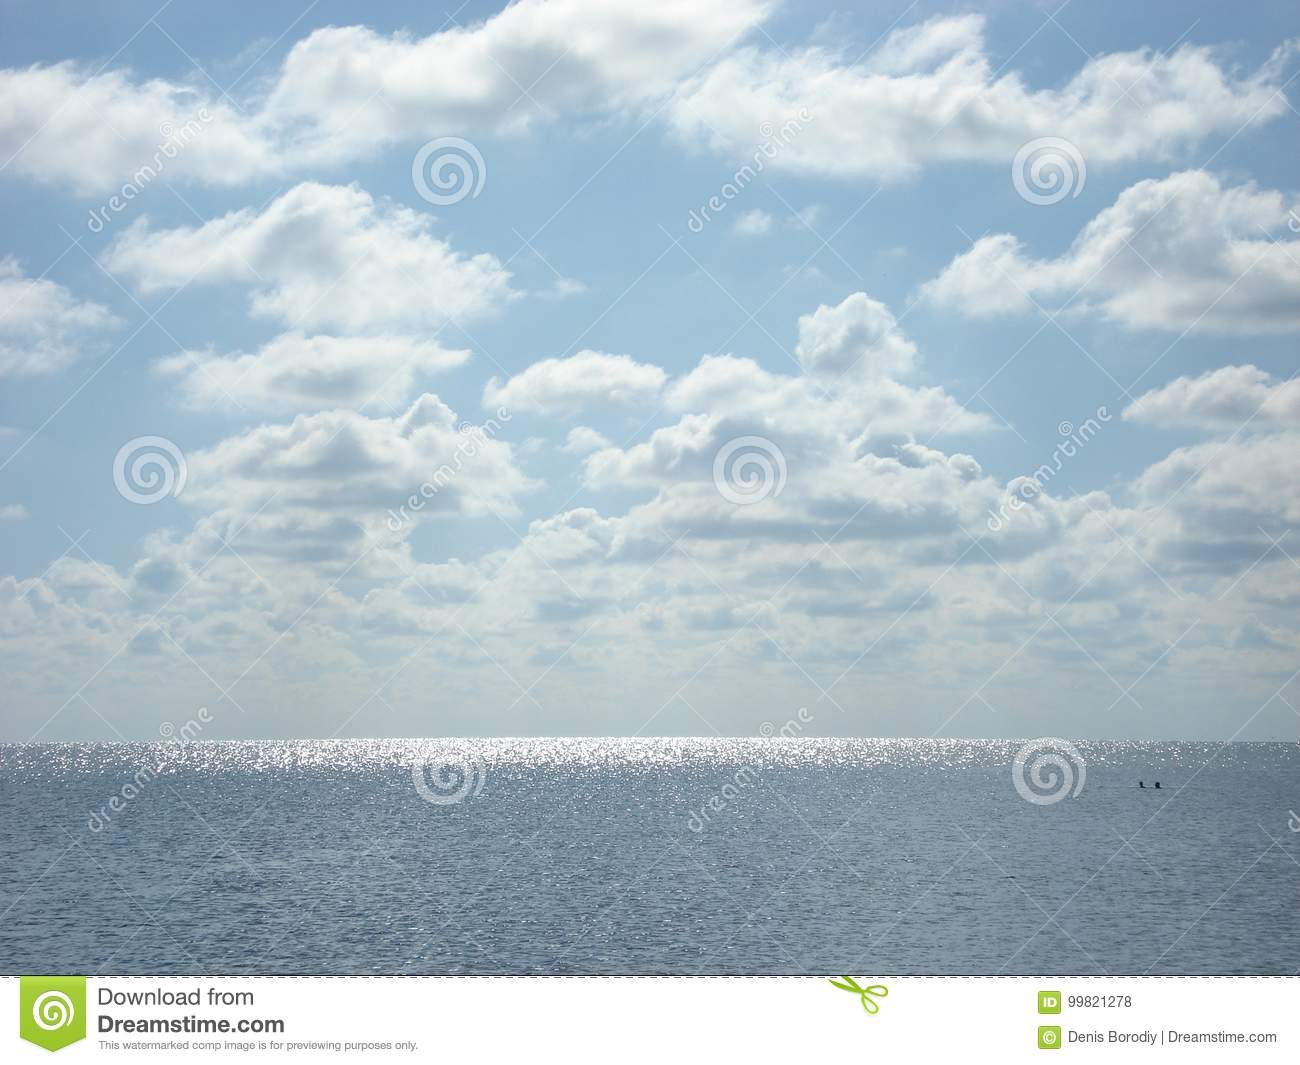 Summer sea under the clouds